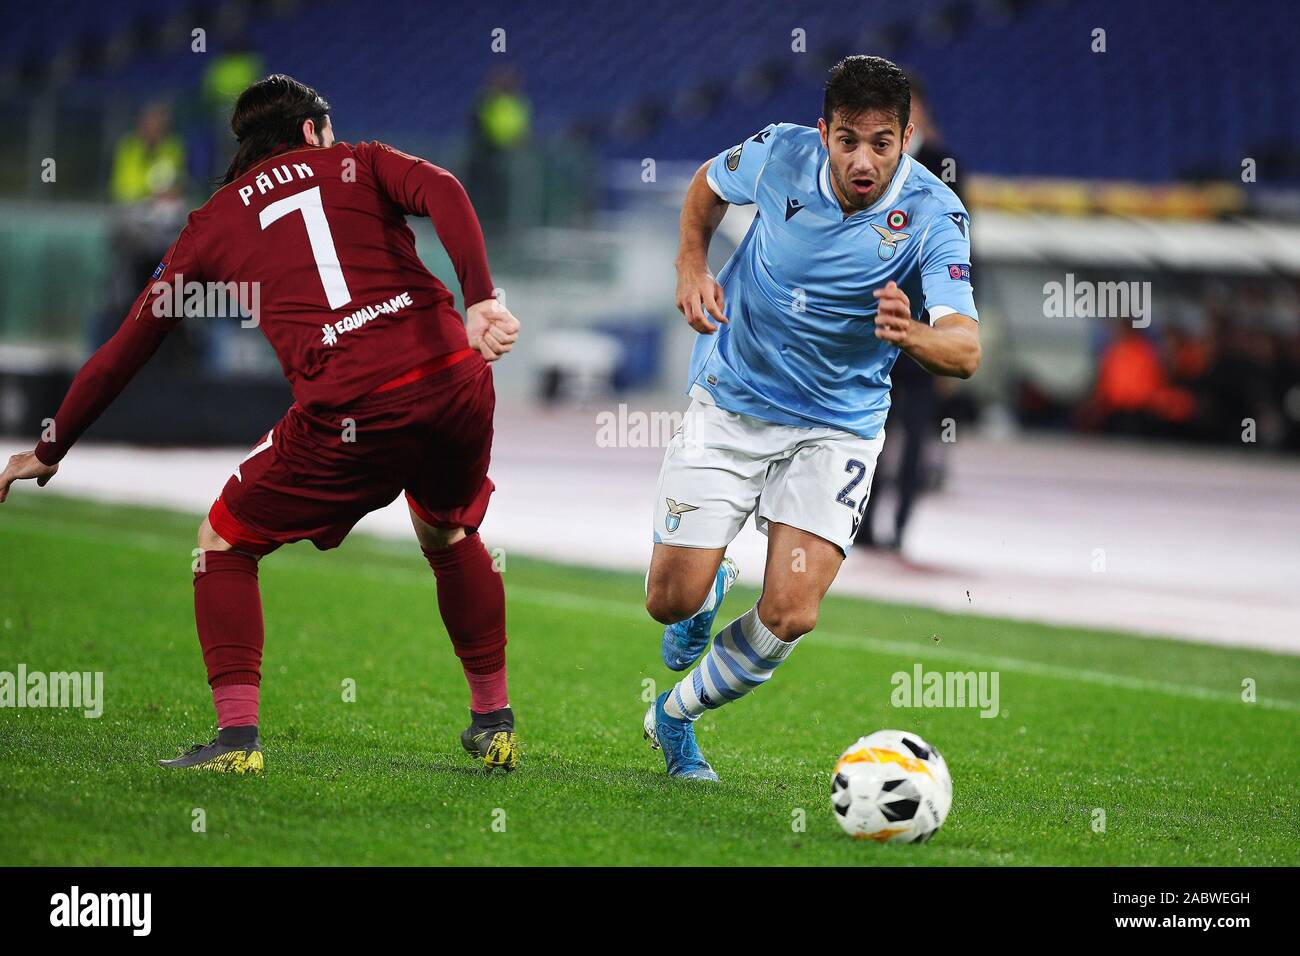 Jony of Lazio (R) and Alexandru Paun of Cluj (L) in action during the UEFA Europa League, Group E football match between SS Lazio and CFR Cluj on November 28, 2019 at Stadio Olimpico in Rome, Italy - Photo Federico Proietti/ESPA-Images Stock Photo